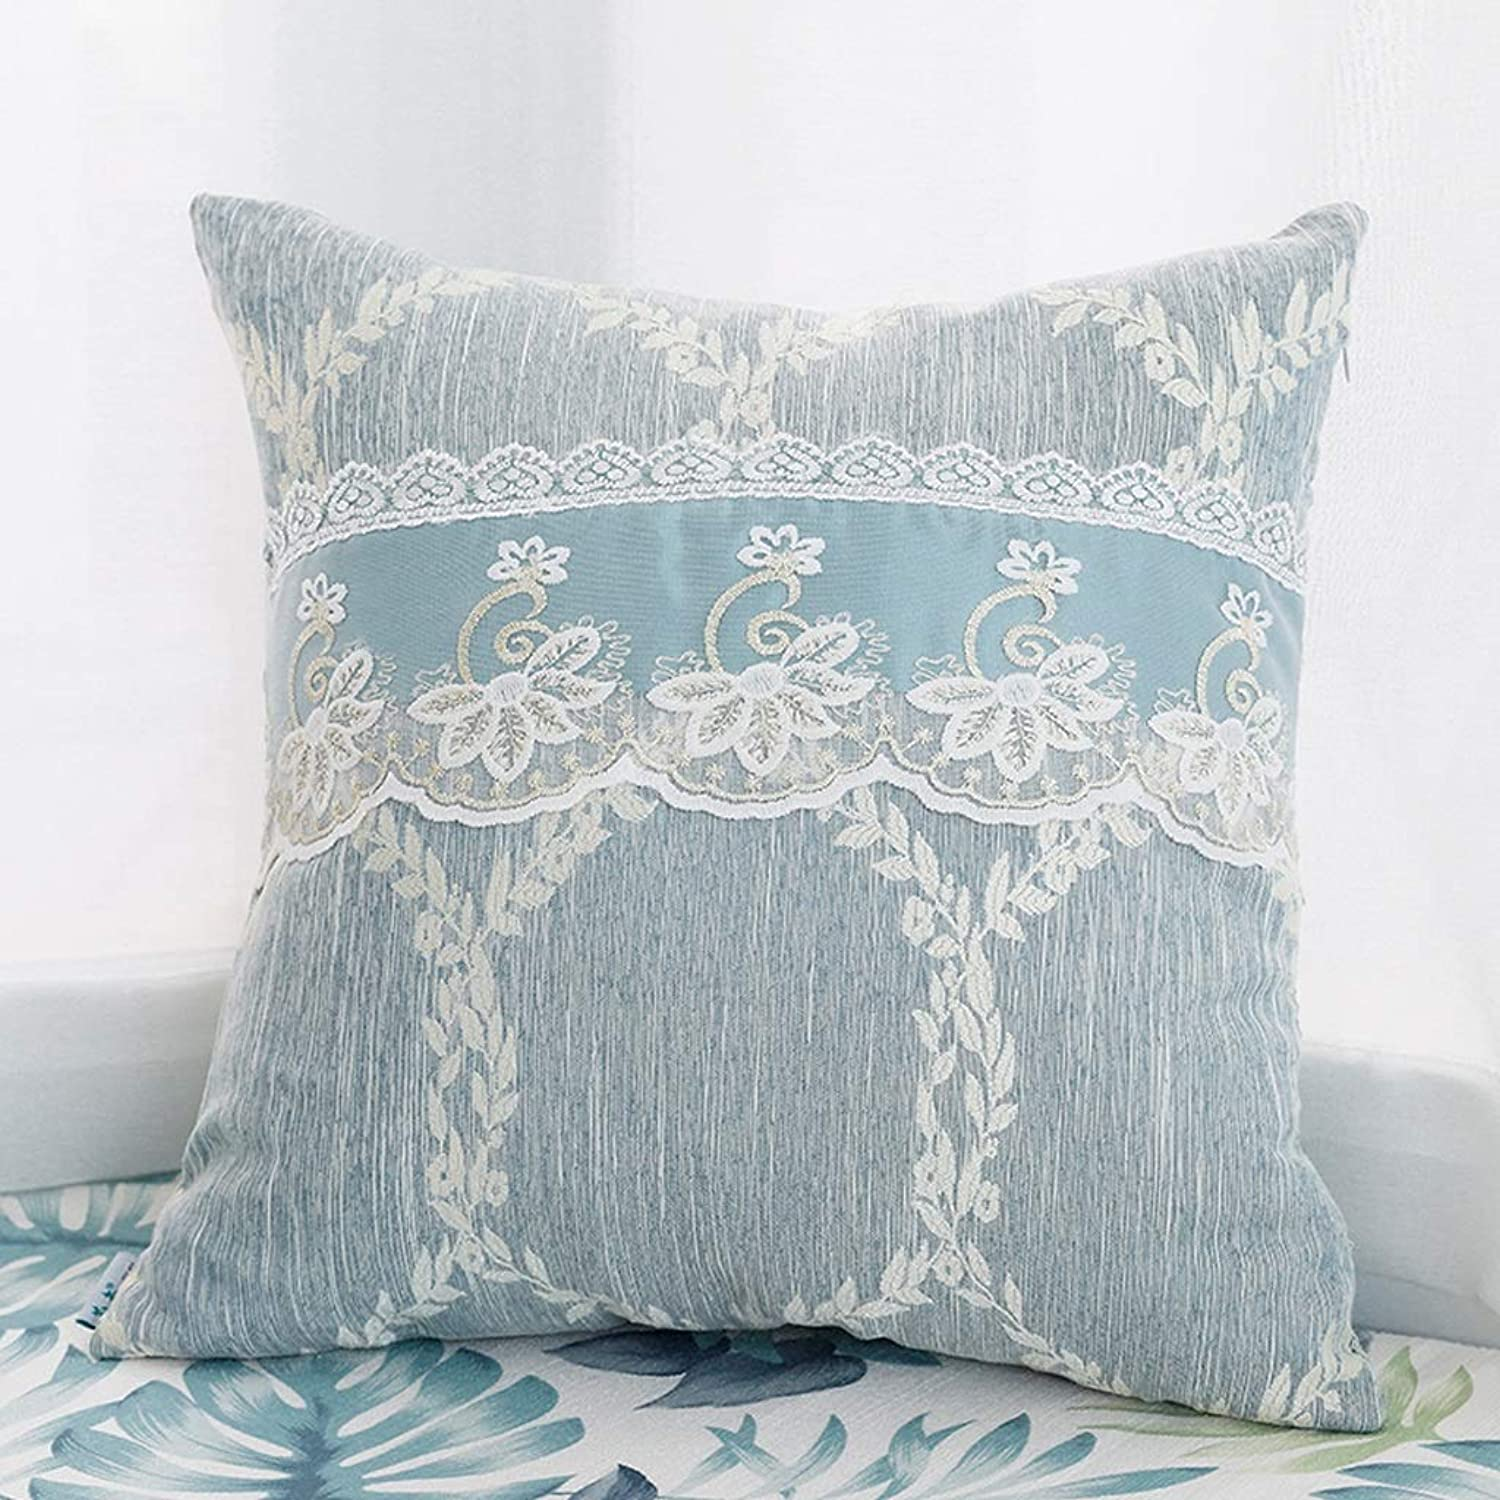 QYSZYG Pillow Living Room Sofa Pillow Embroidered Pillow Pillow Lace Pillowcase with Core Bed Cushions Removable and Washable Household Pillow (color   A)